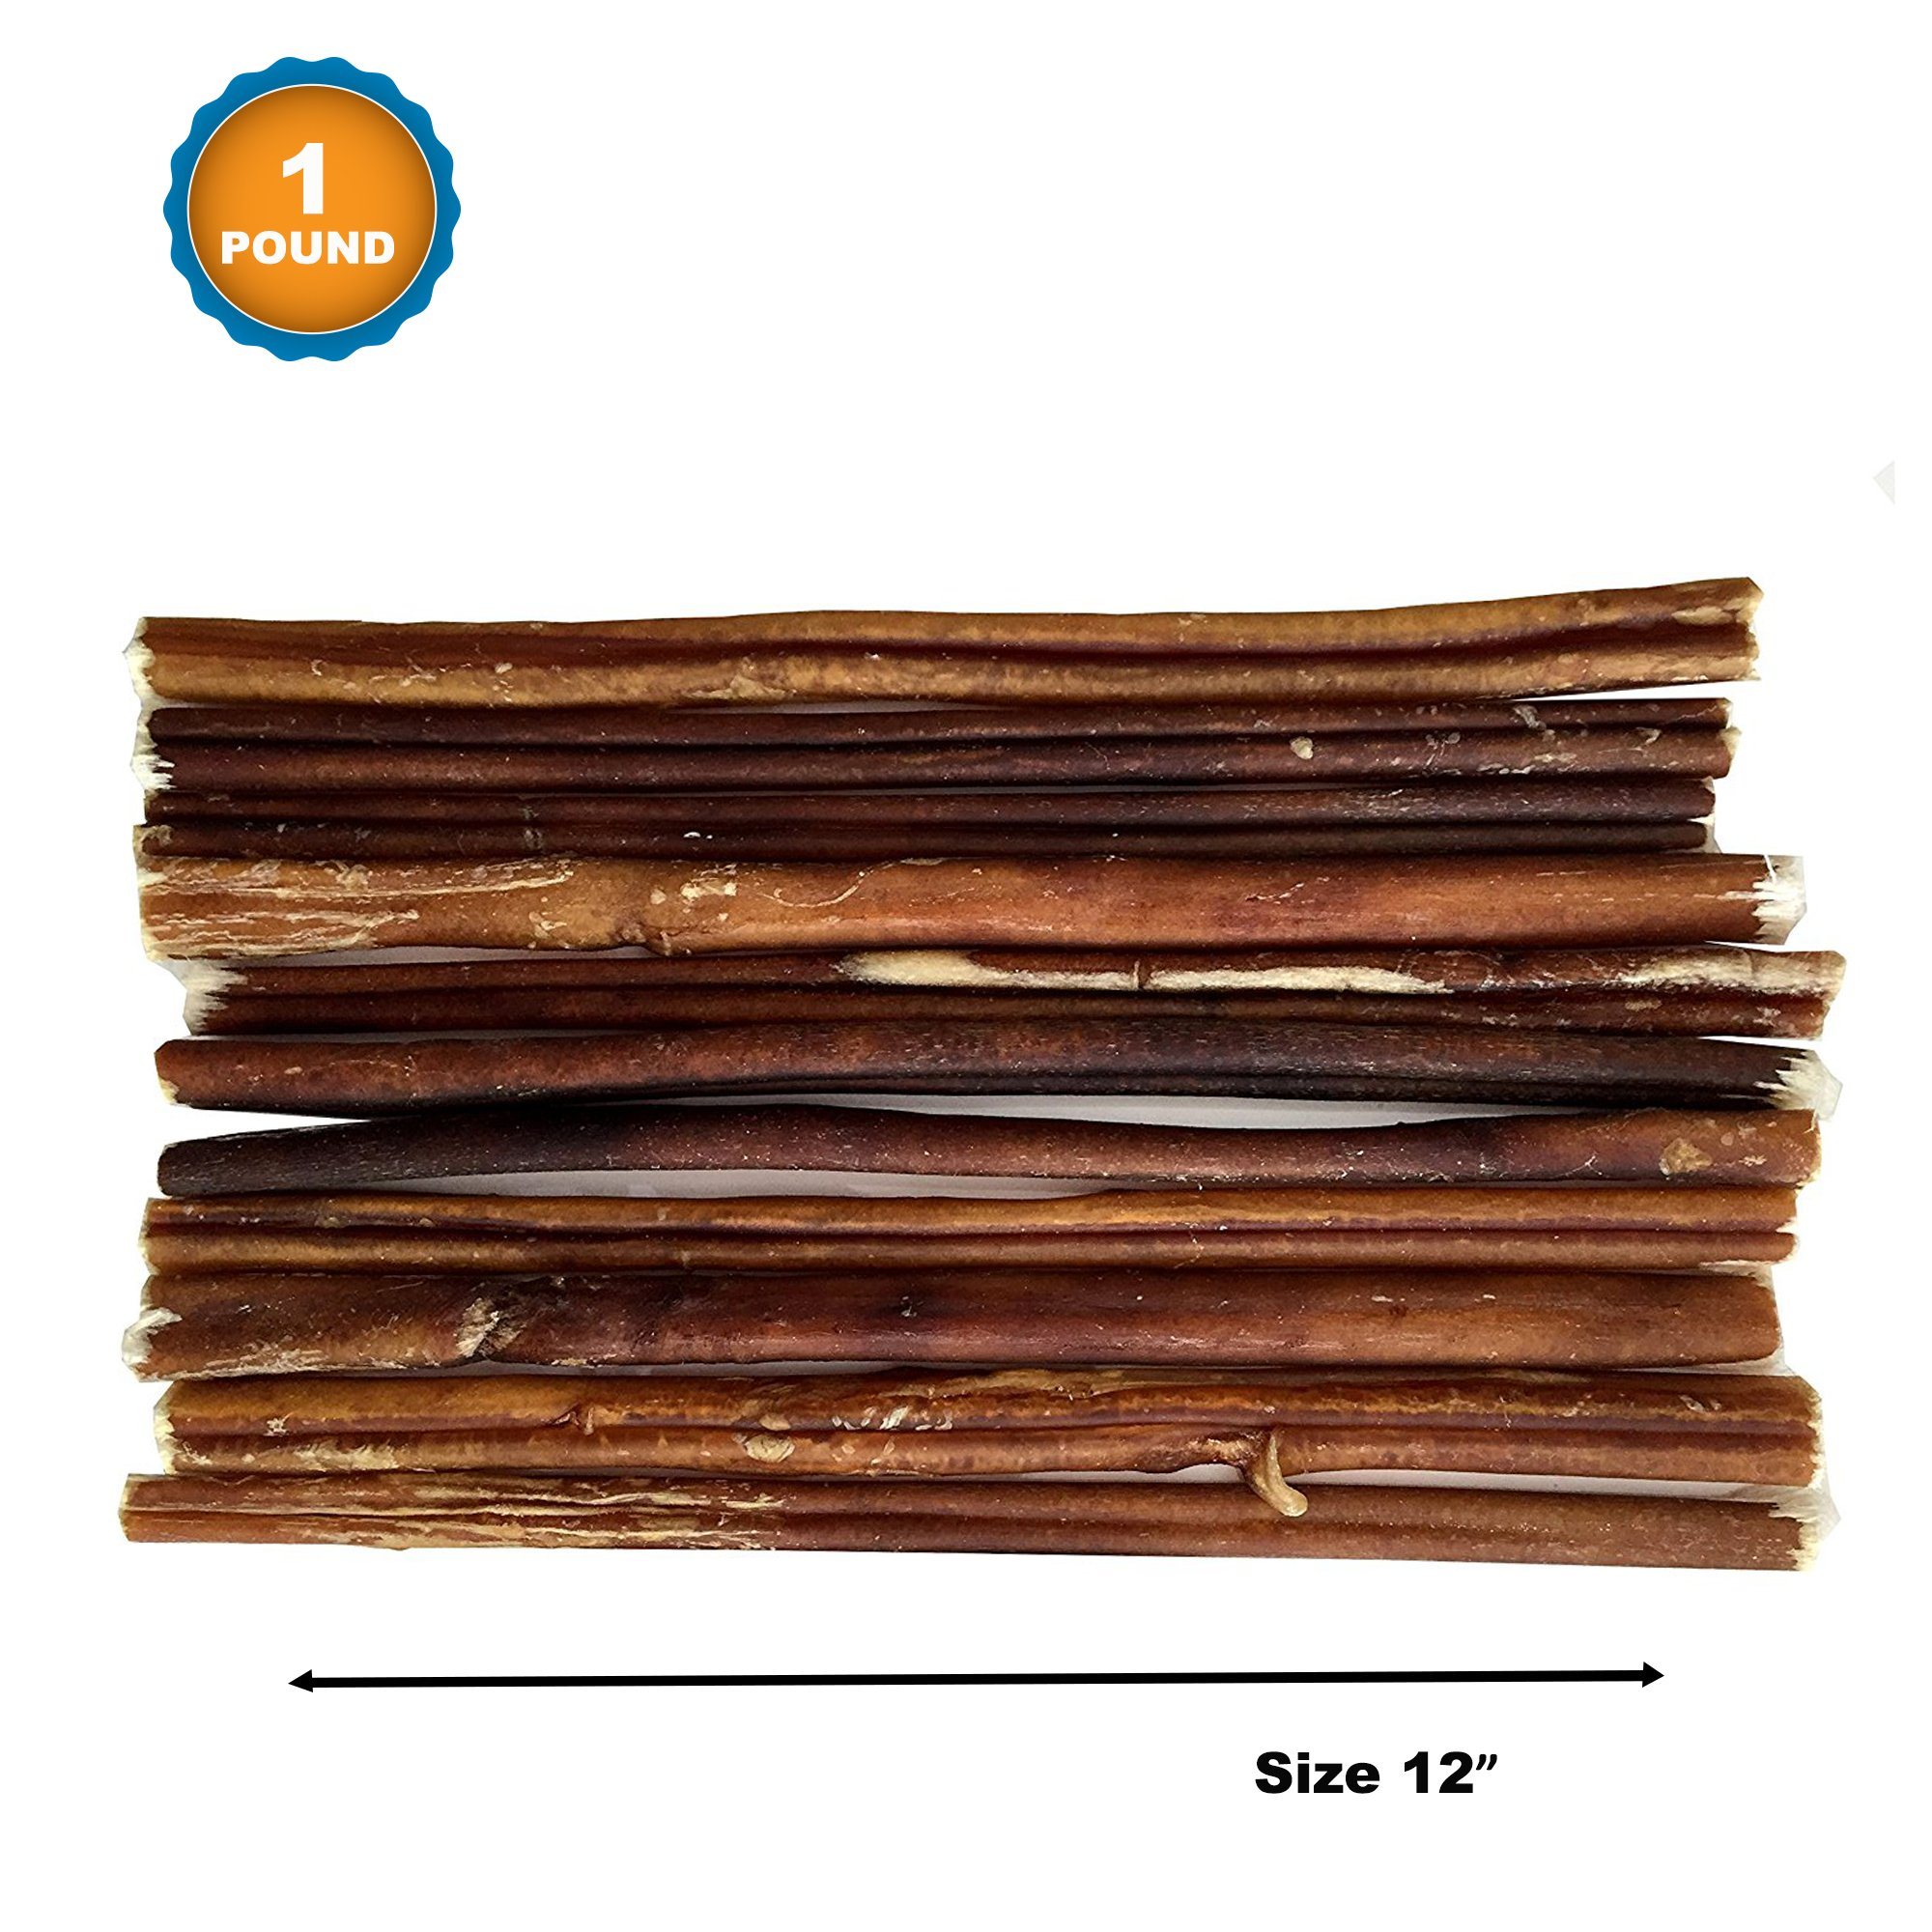 123 Treats - 12 inch Dog Bully Sticks (1 Pound Bag) 100% Natural Chews for Dogs & Puppies - Grass-Fed Free-Range Premium Beef Dog Chews - Bulk Dog Sticks Chew Dental Treats